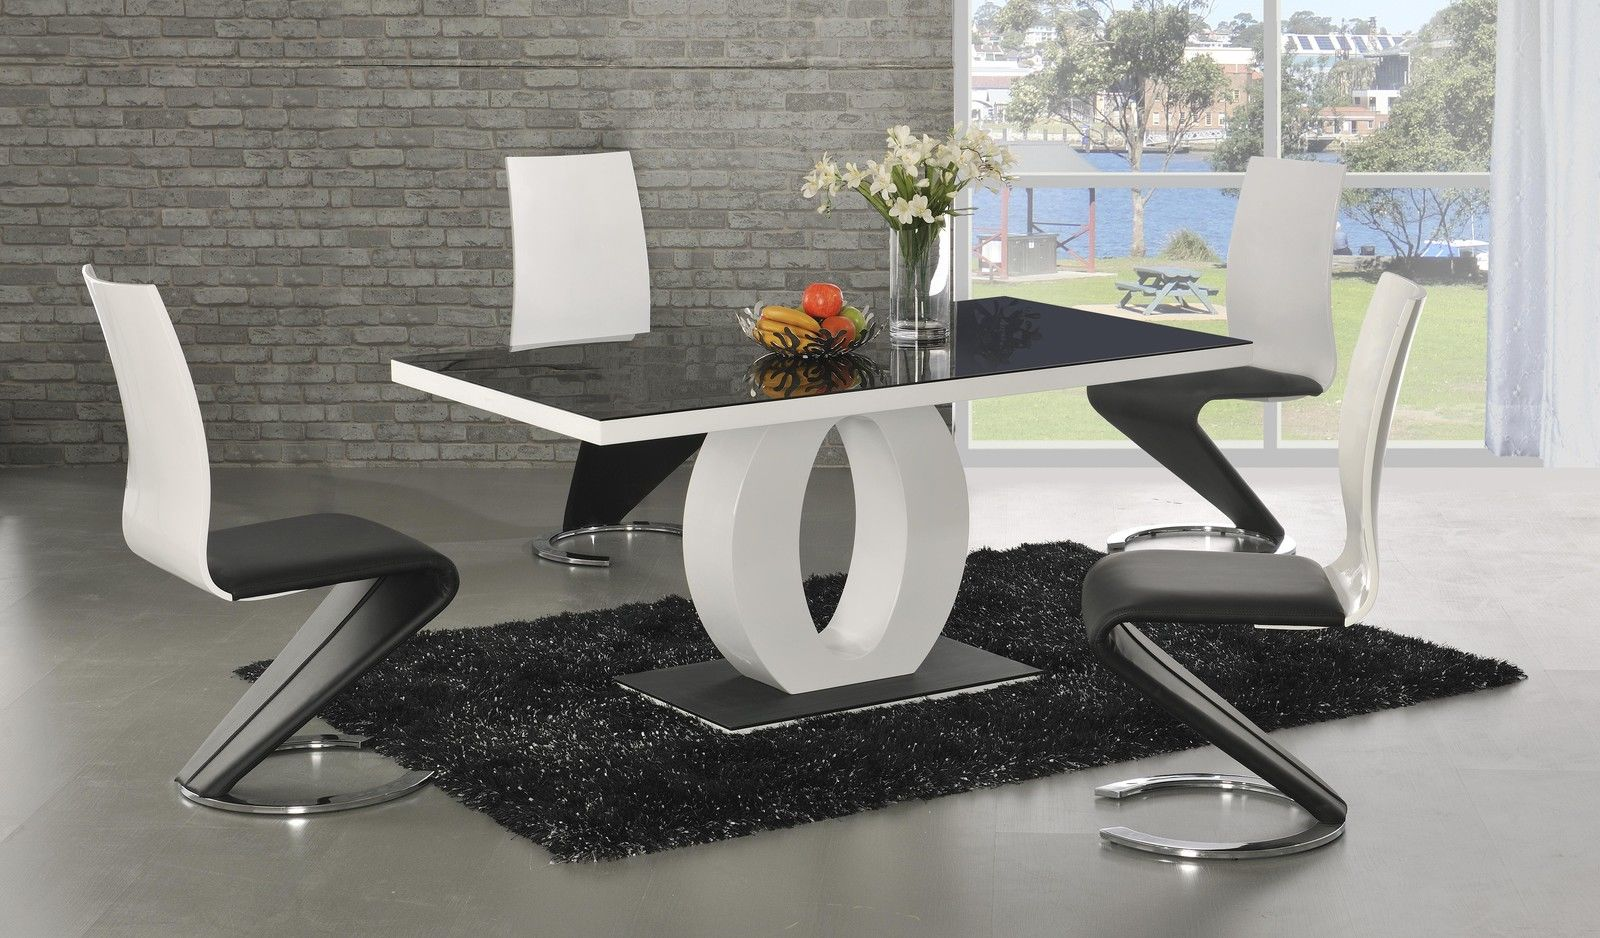 Exceptionnel GA Angel Black Glass White Gloss 160 Cm Designer Dining Set 4 6 Z Swish  Chairs